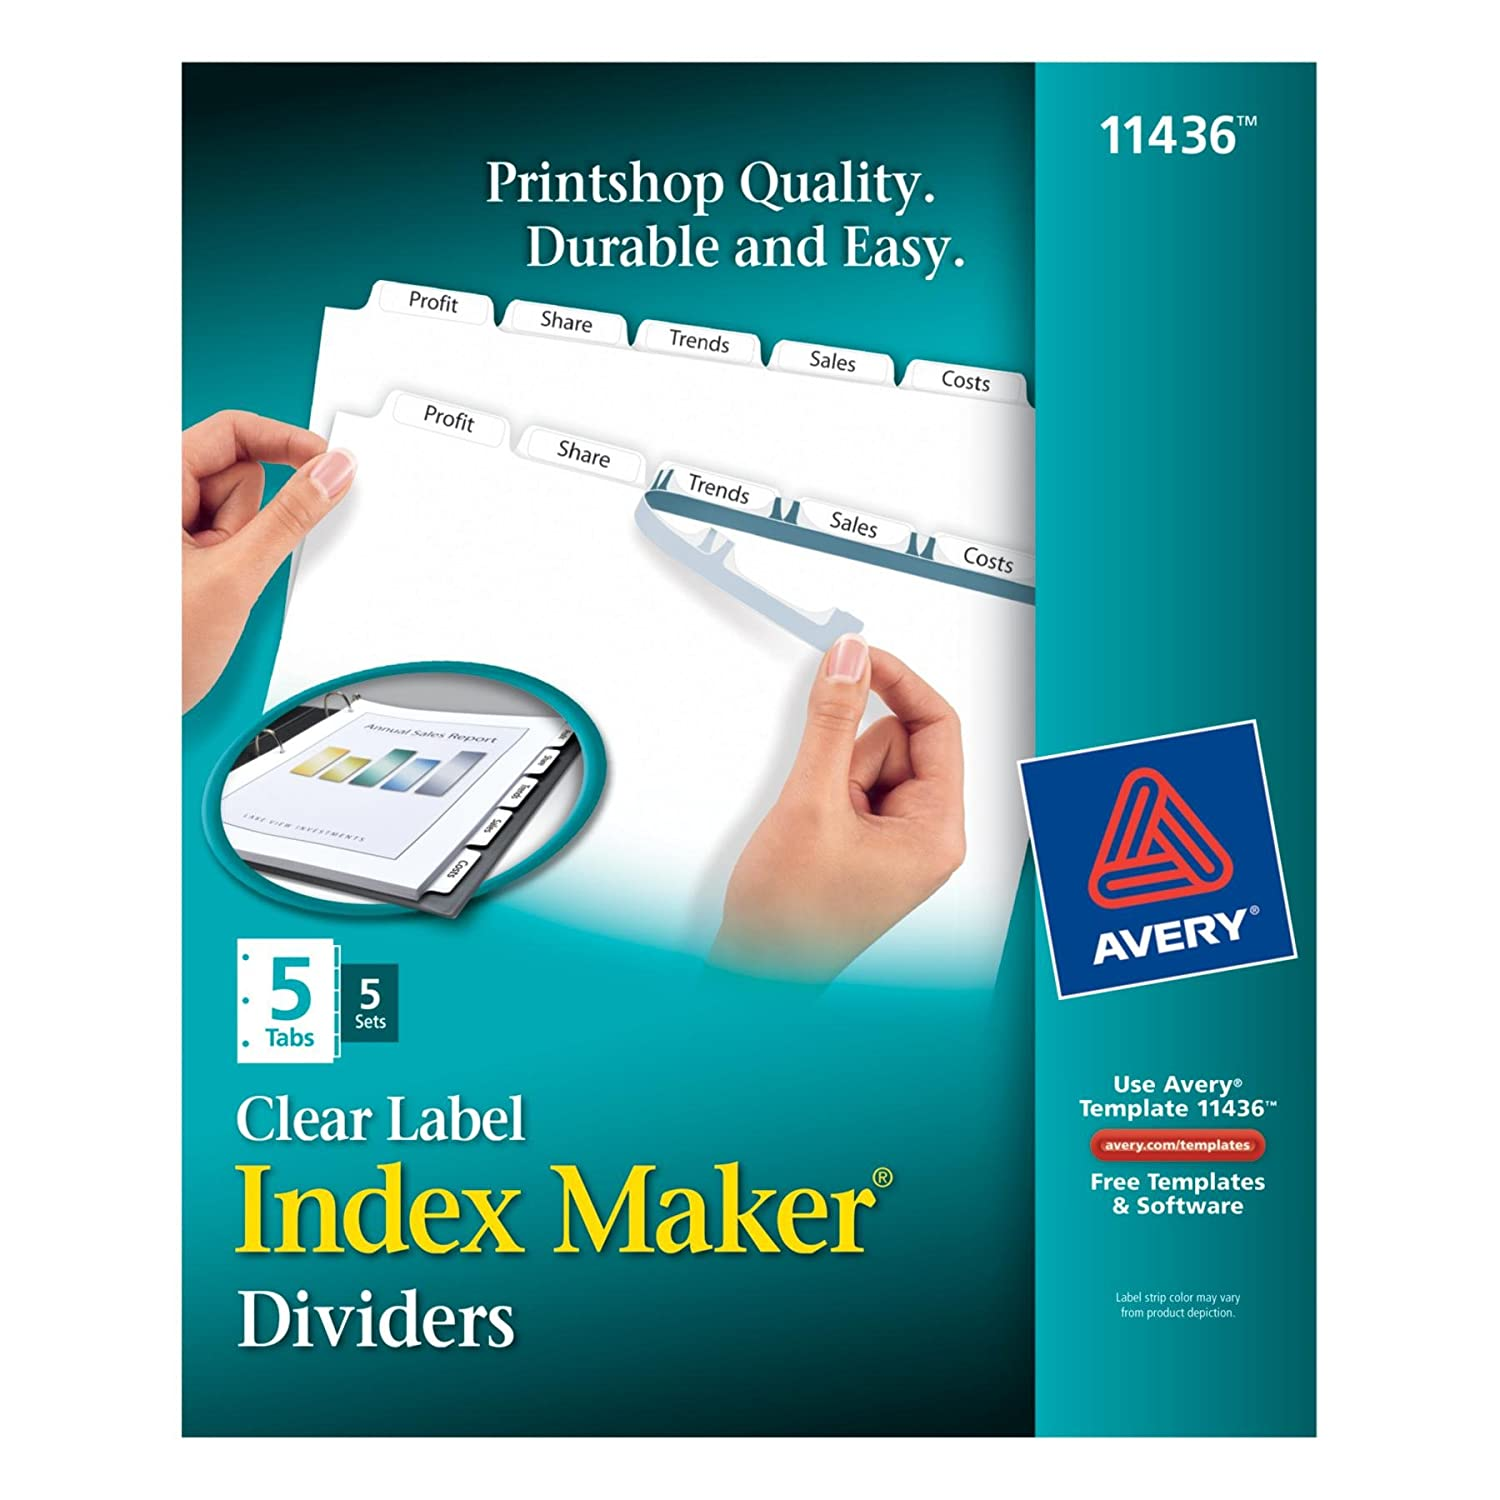 Color printing label maker - Amazon Com Avery Index Maker Clear Label Dividers With Easy Apply Label Strip White Tabs 5 Tabs Per Set 5 Sets Per Pack 11436 Binder Index Dividers